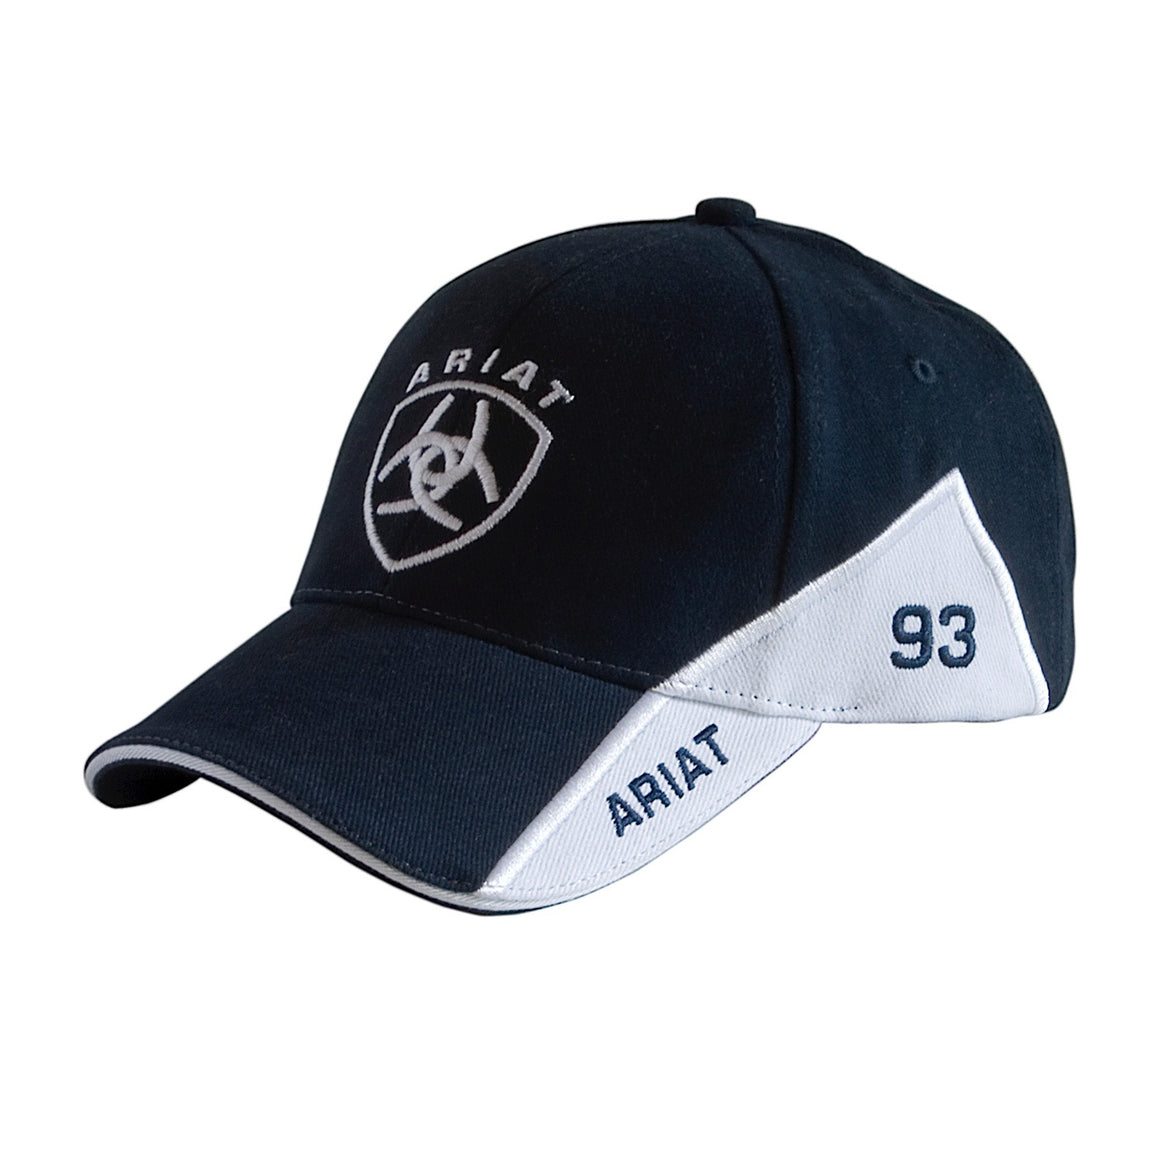 Ariat Signature Cap Navy/ White